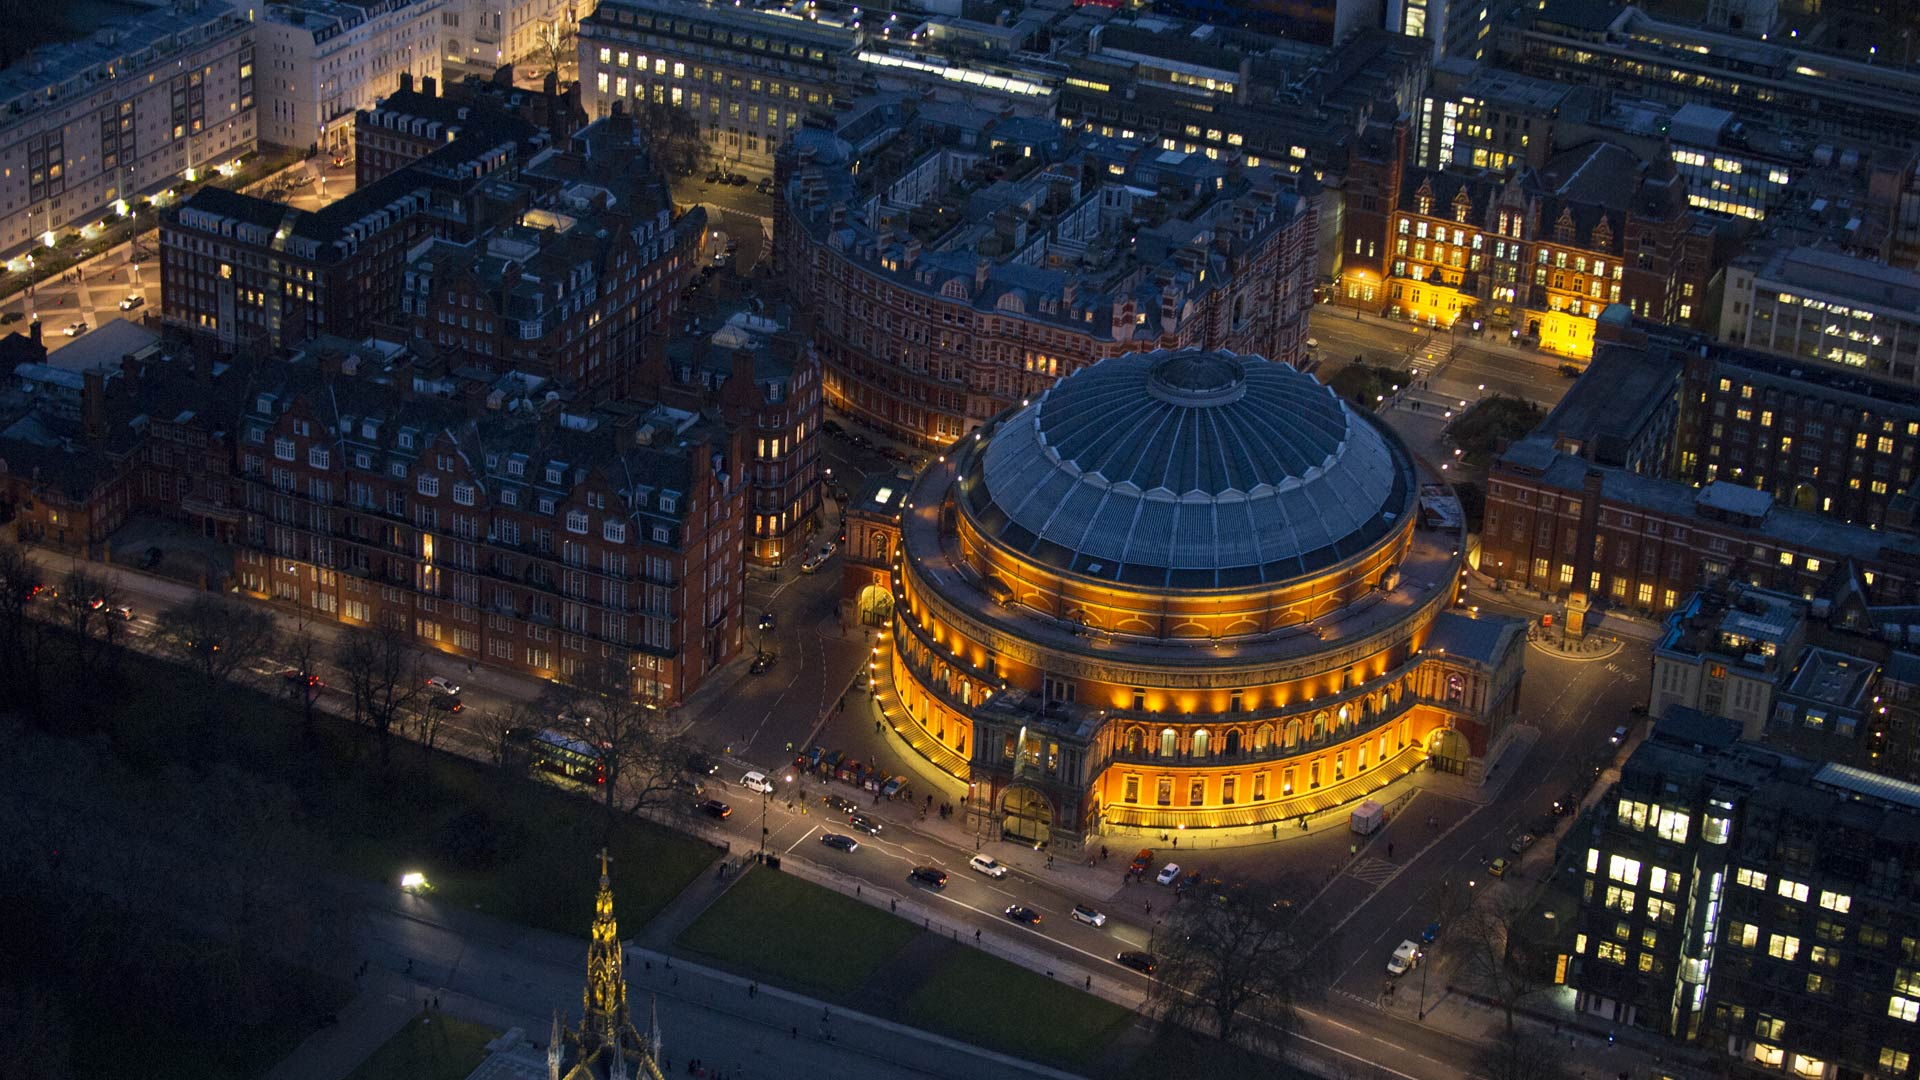 Aerial view of the Royal Albert Hall in South Kensington, London, England (© Jason Hawkes/Getty Images)